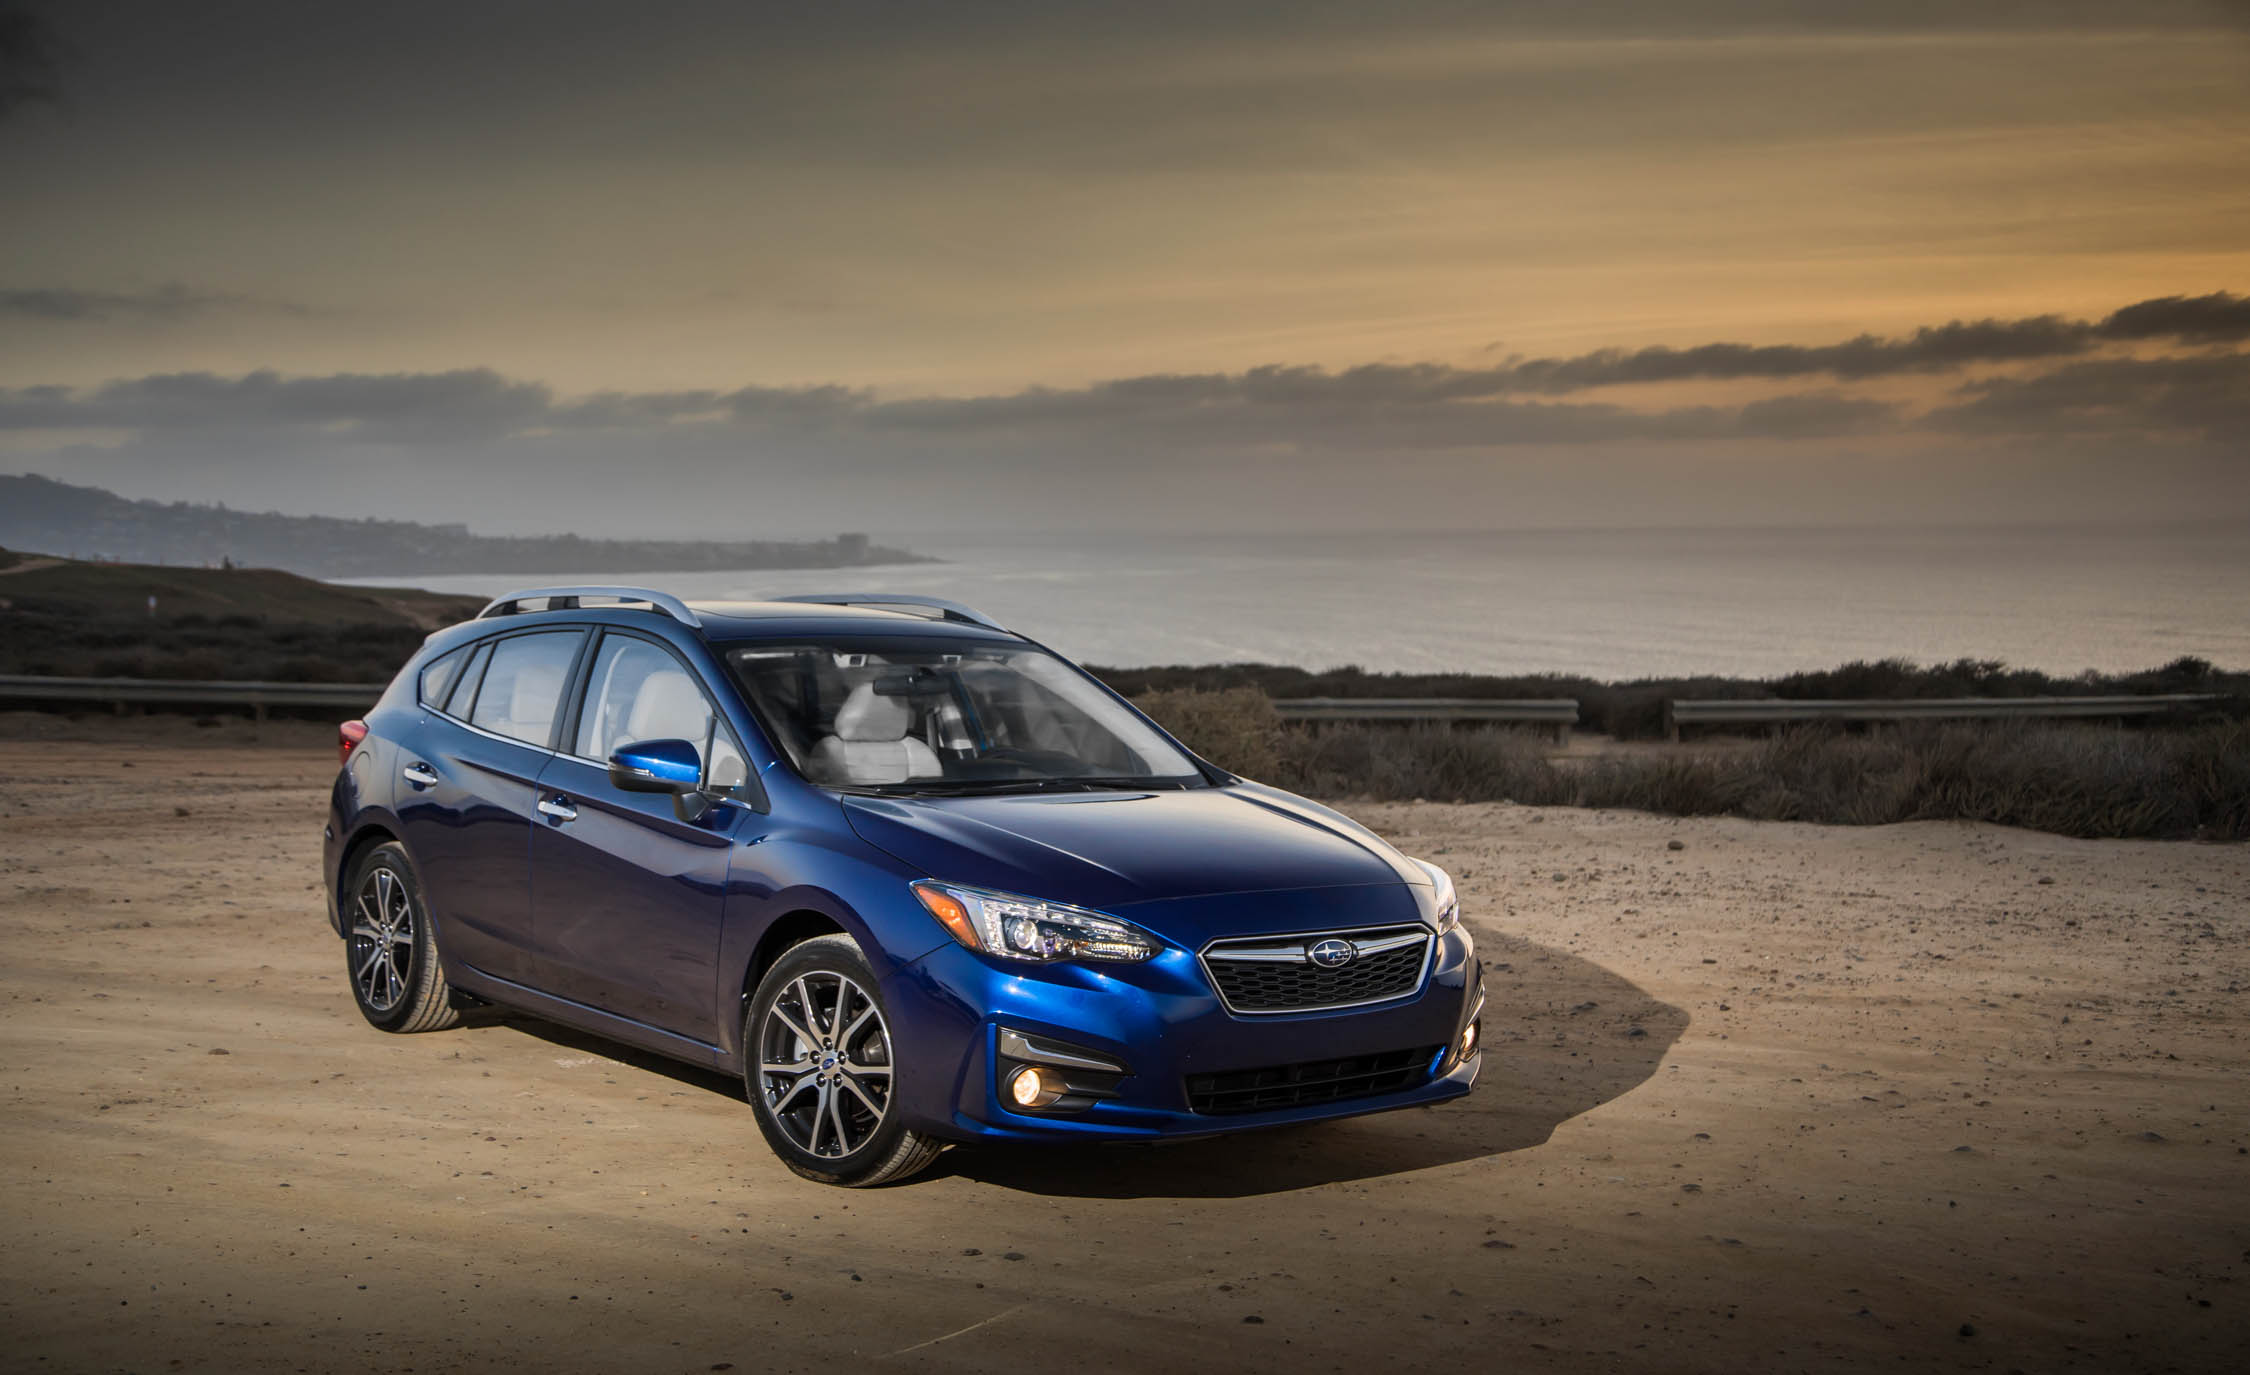 2017 Subaru Impreza Hatchback (Photo 23 of 33)